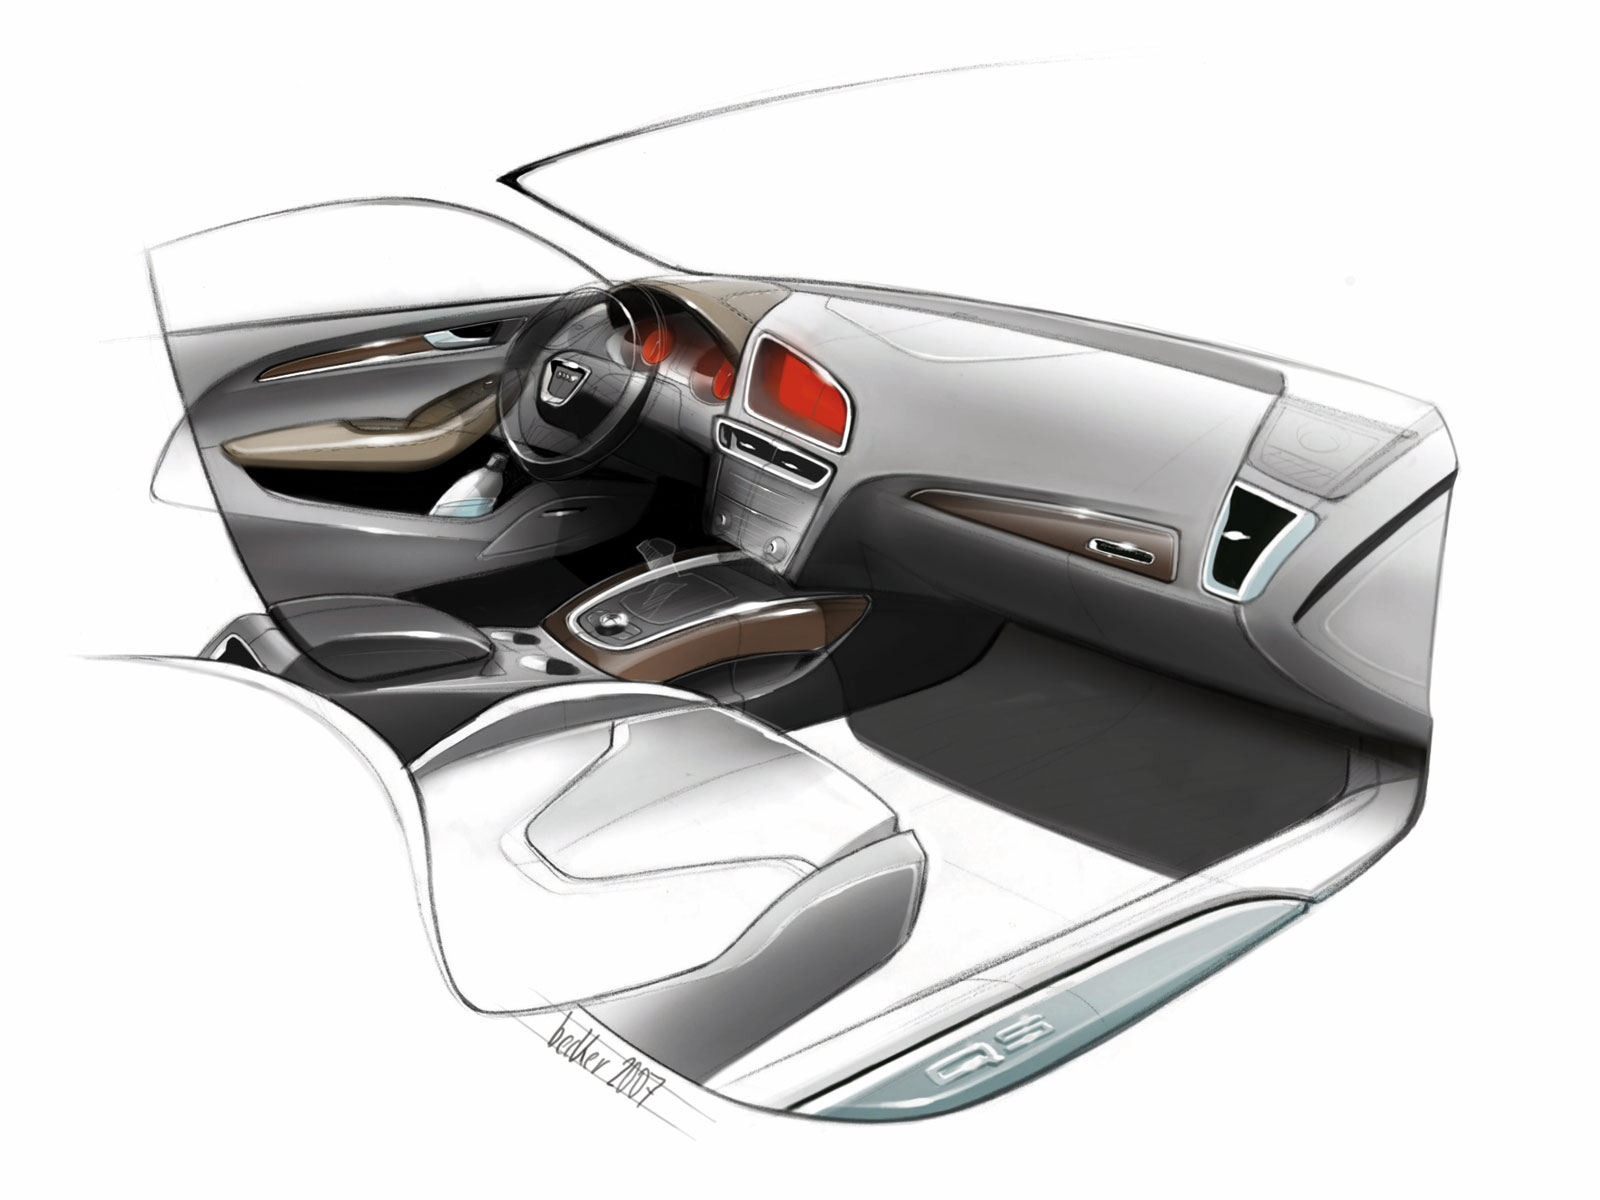 Automotive Interior Designs With Closed Cell Foam